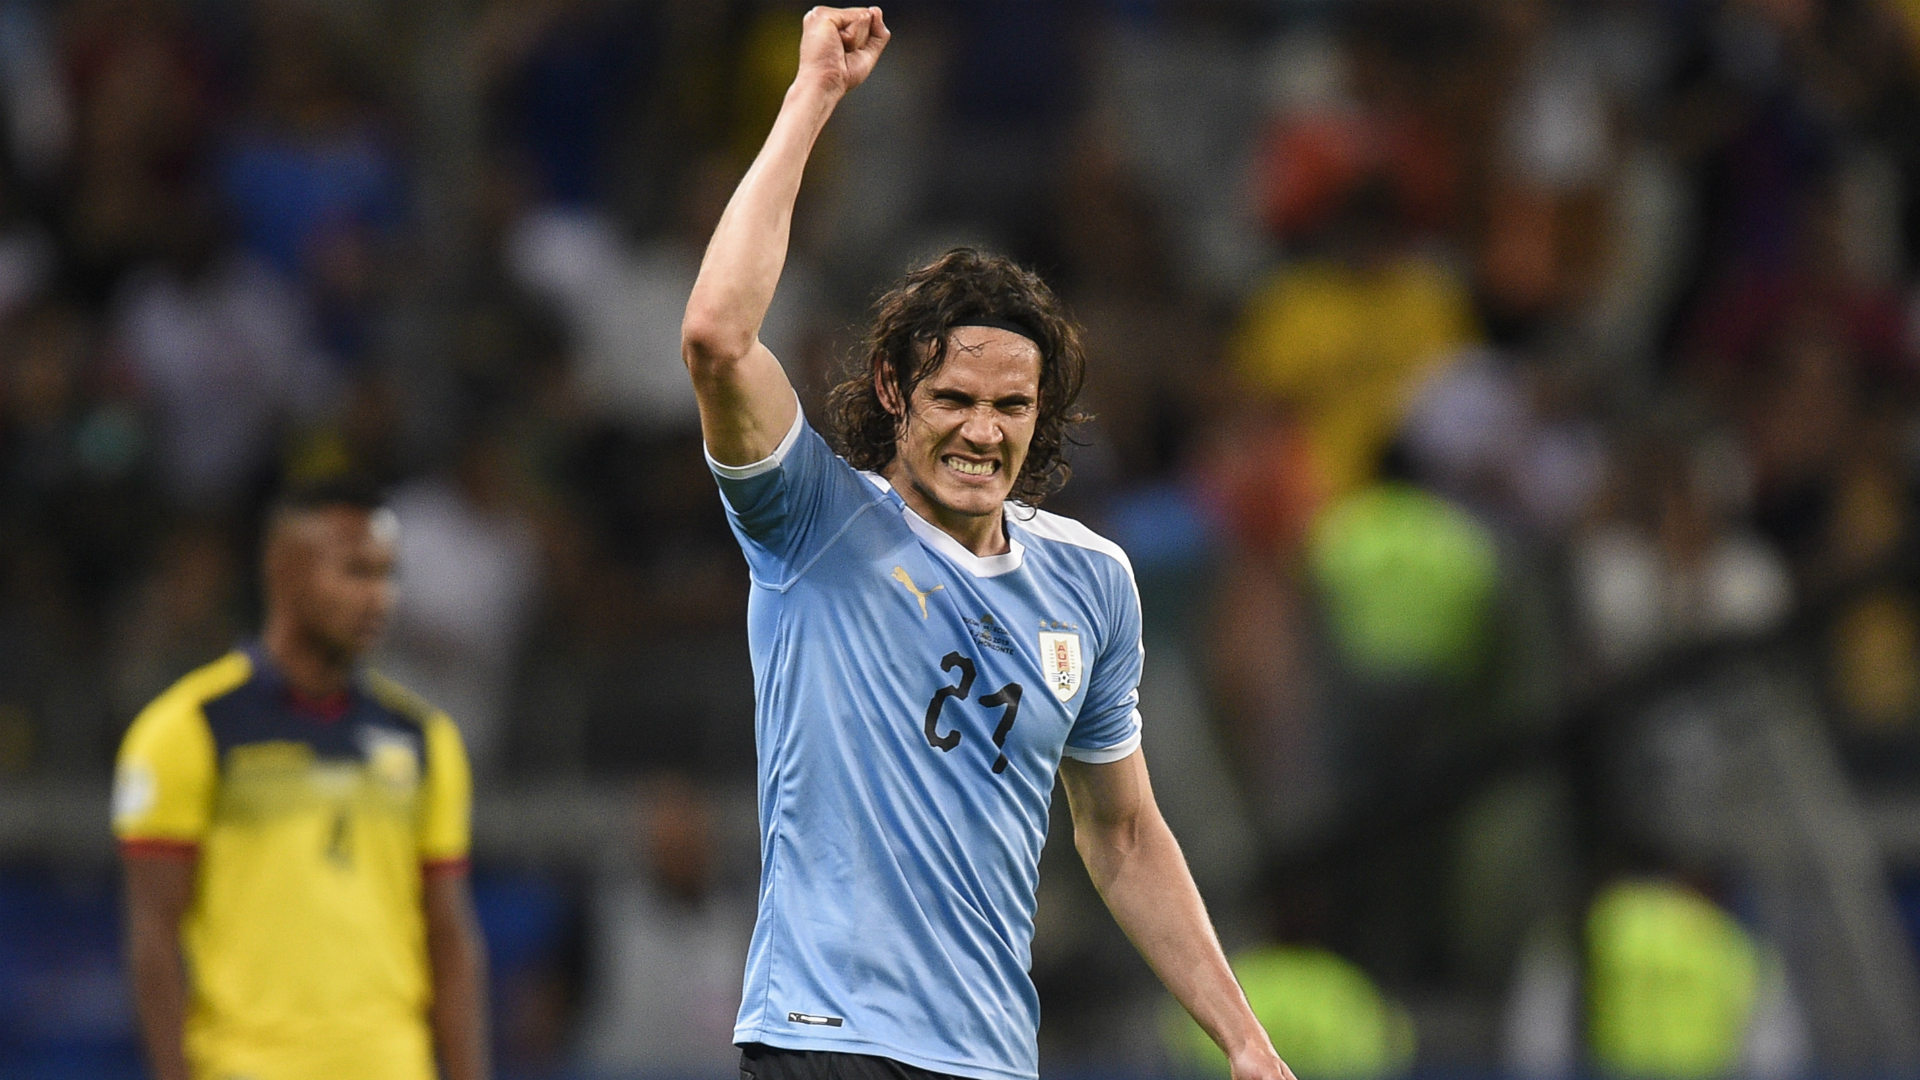 Edinson Cavani revelled in Sunday's result as Uruguay – Copa America's most successful team – eye their first title since 2011.